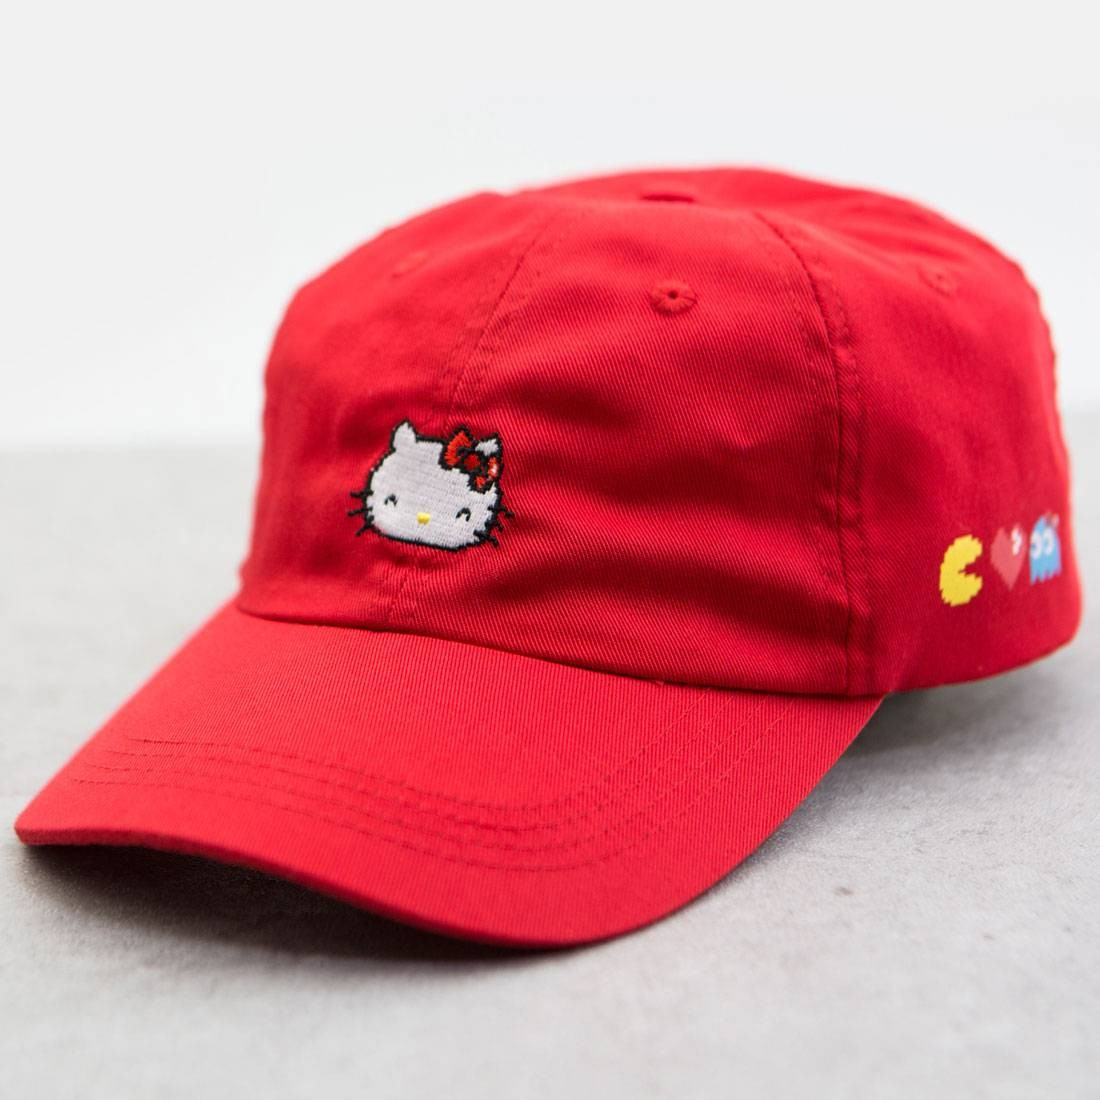 BAIT x Sanrio x Pac-Man Hello Kitty Hat red 433f1e3d945